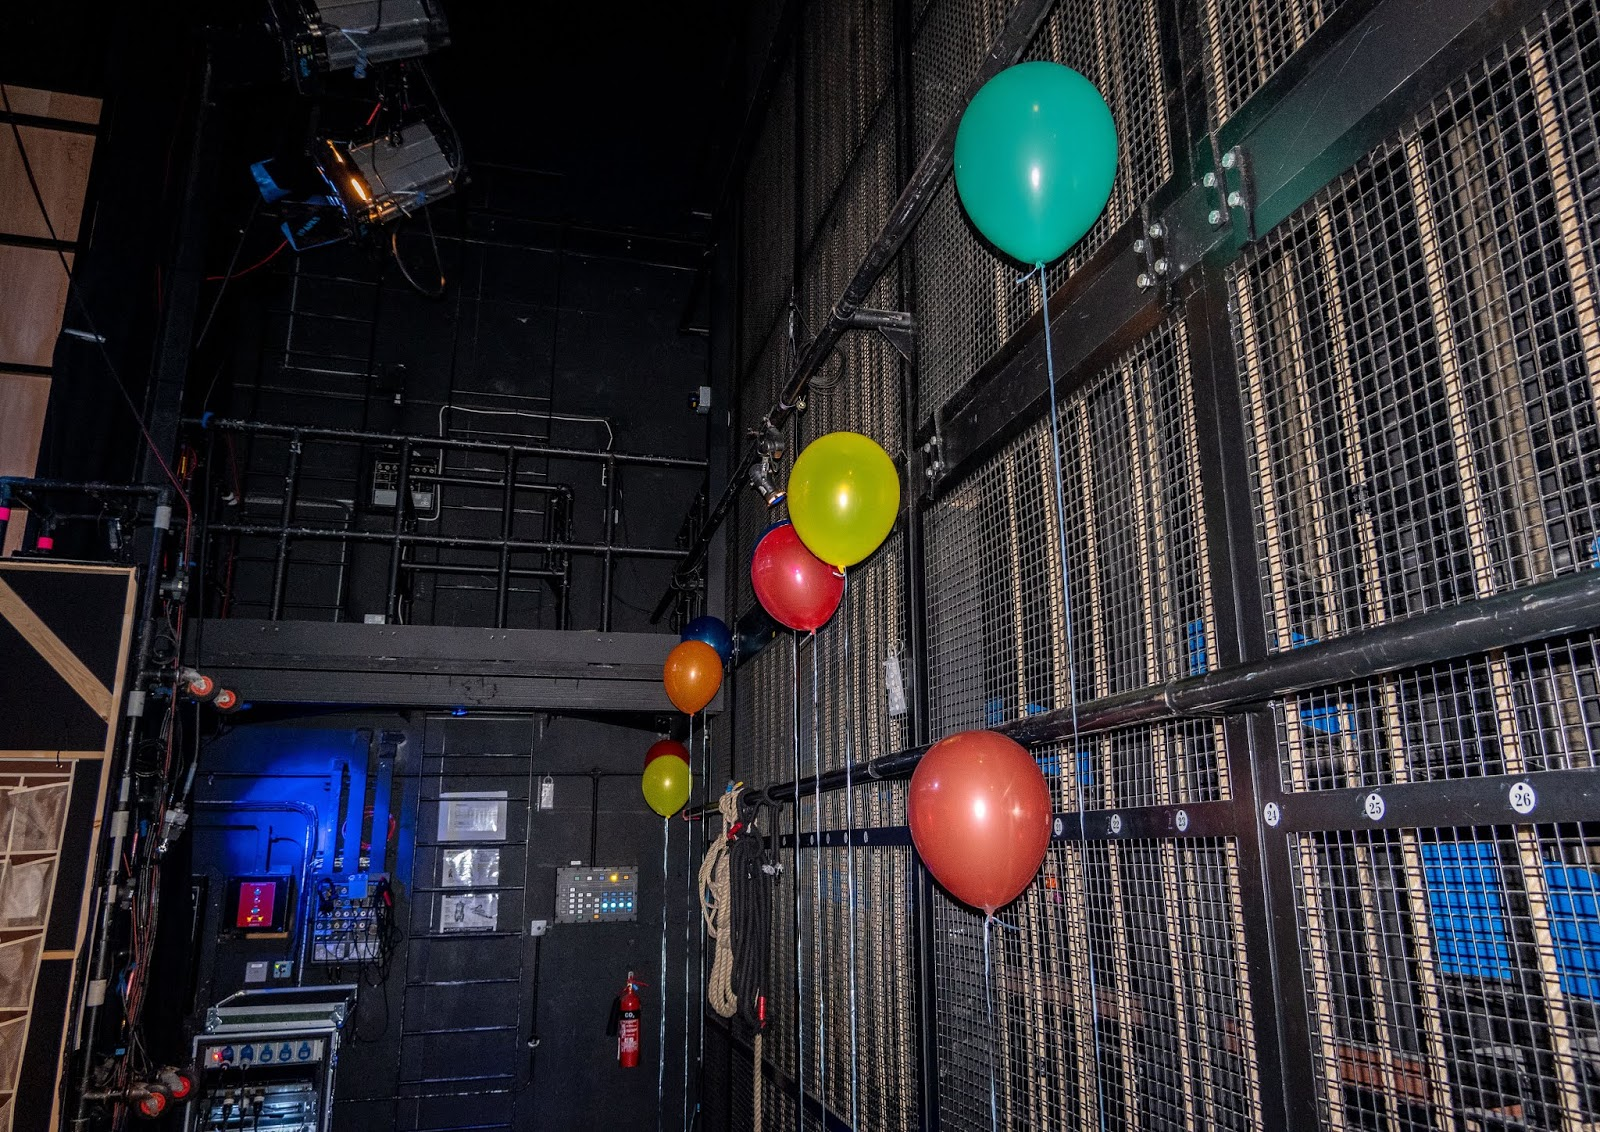 Balloons at the side of the Marlowe stage